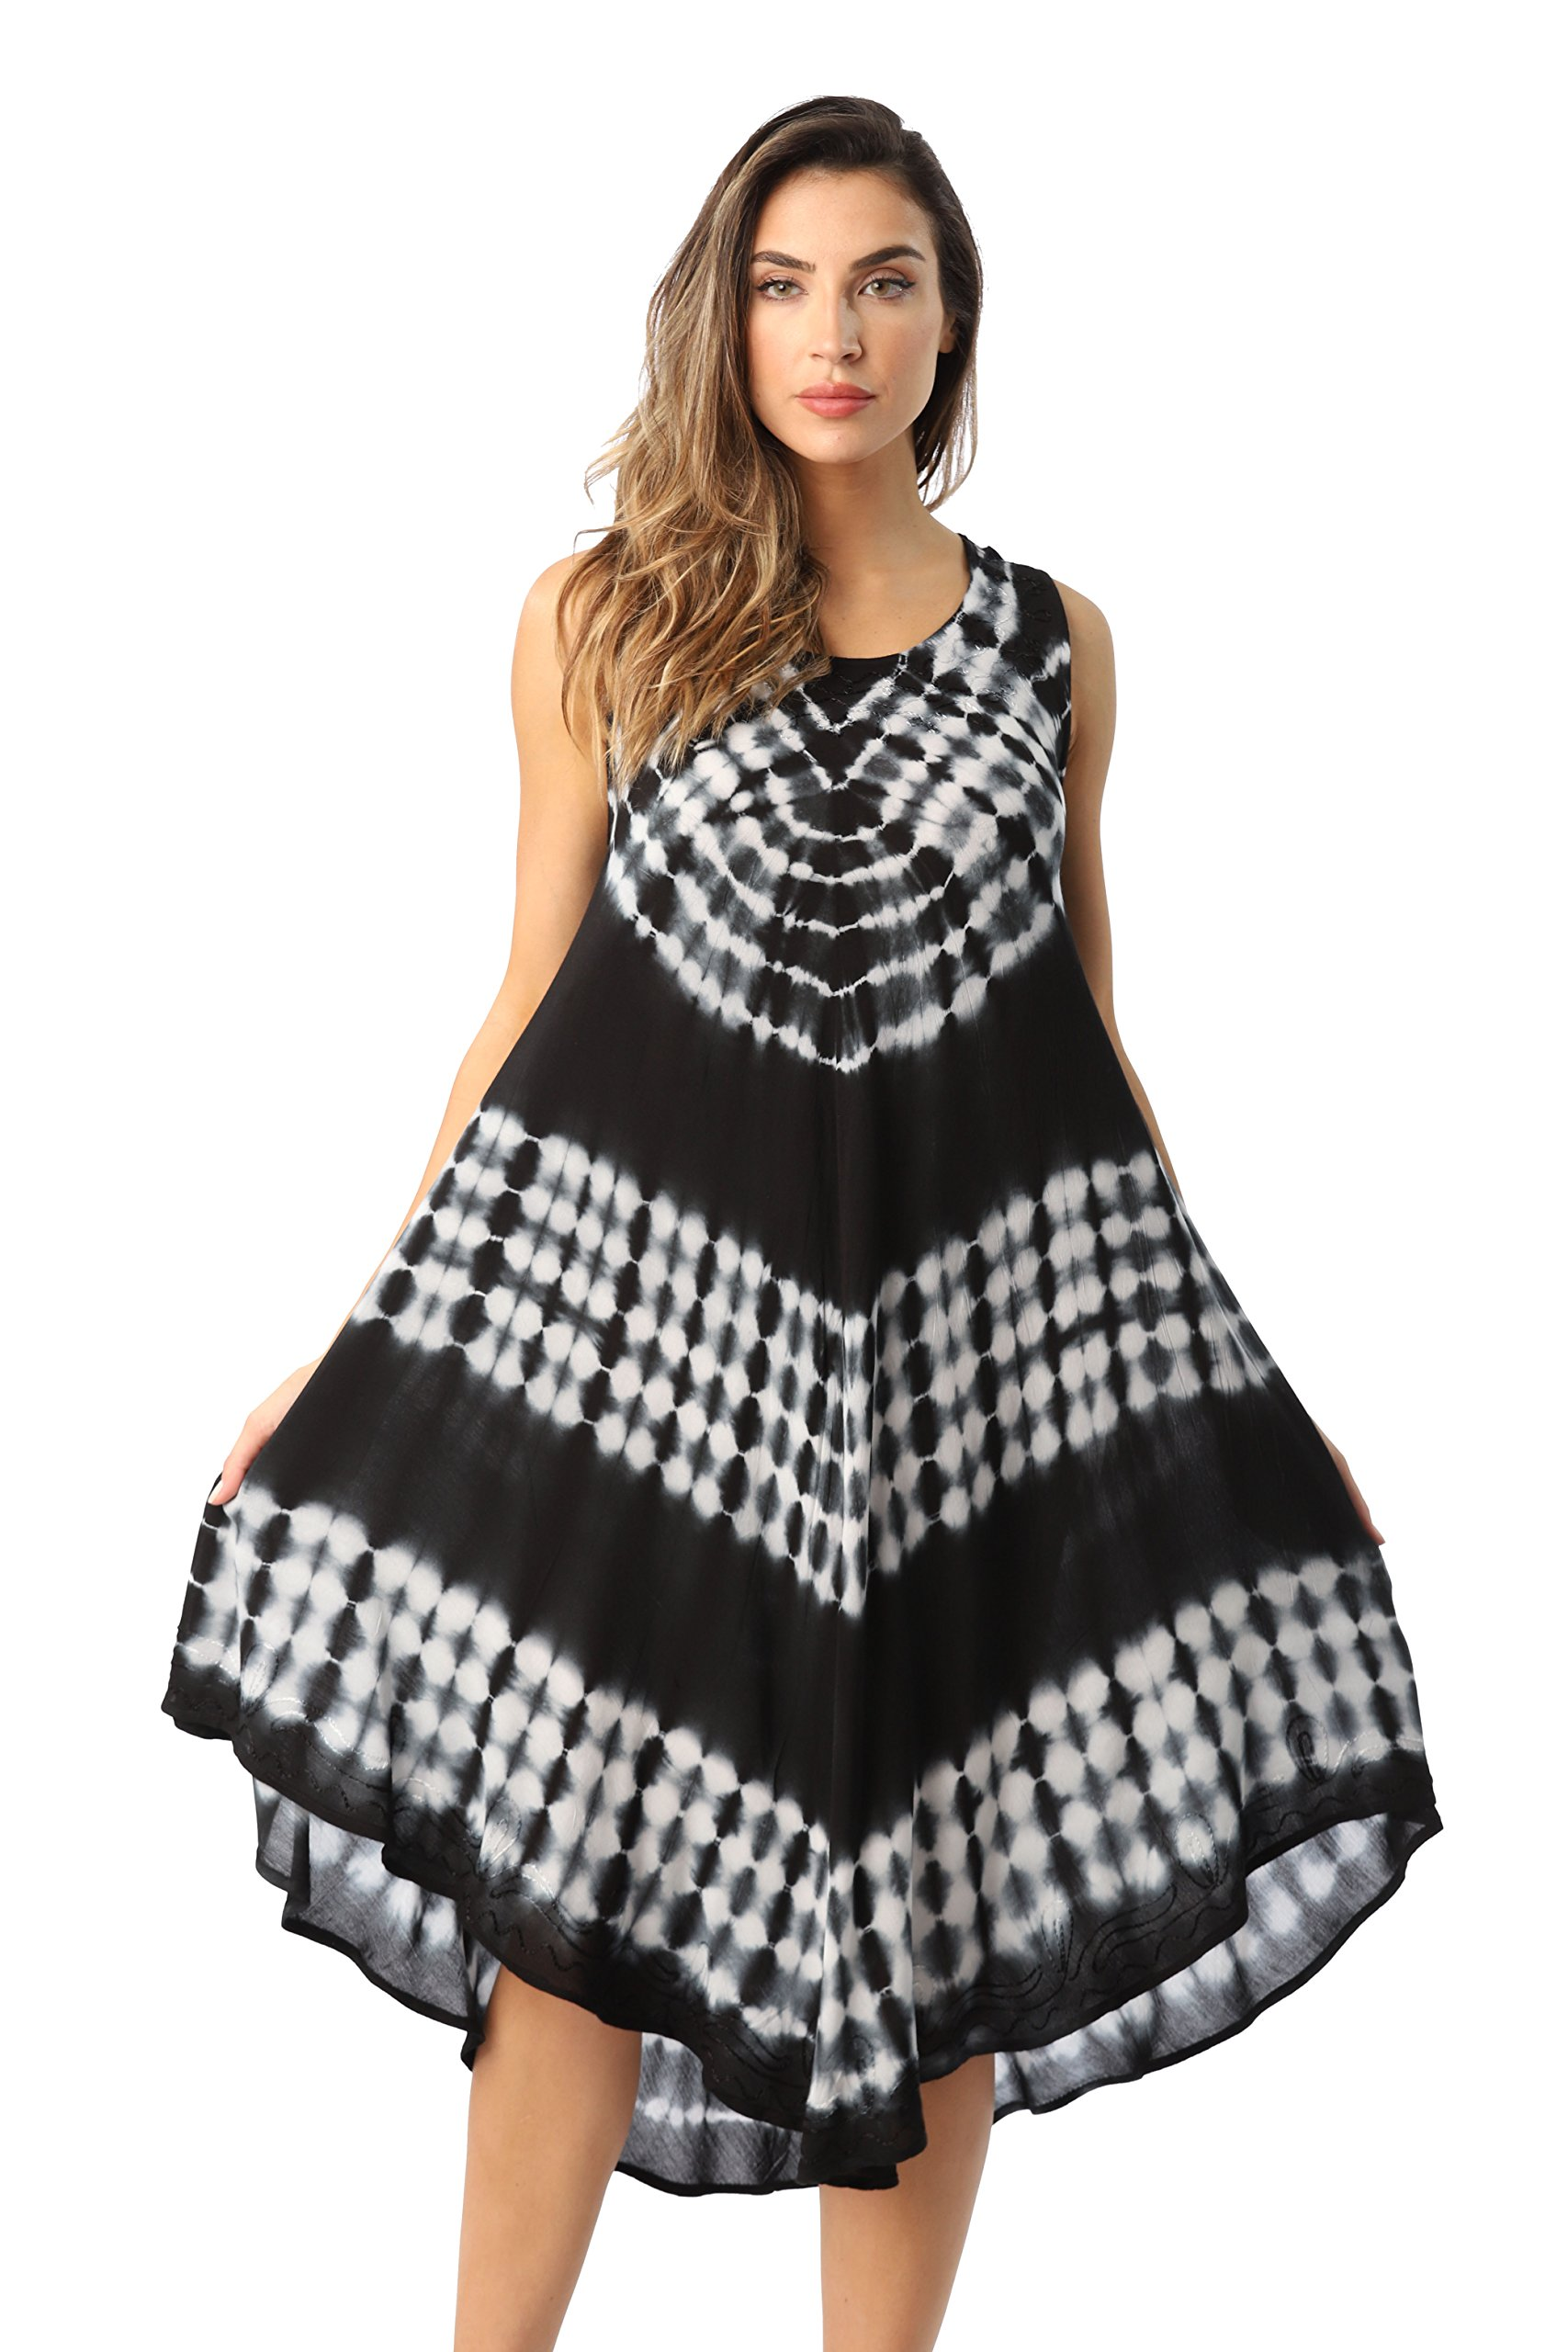 Riviera Sun 21802-BLK-L Dress Dresses For Women